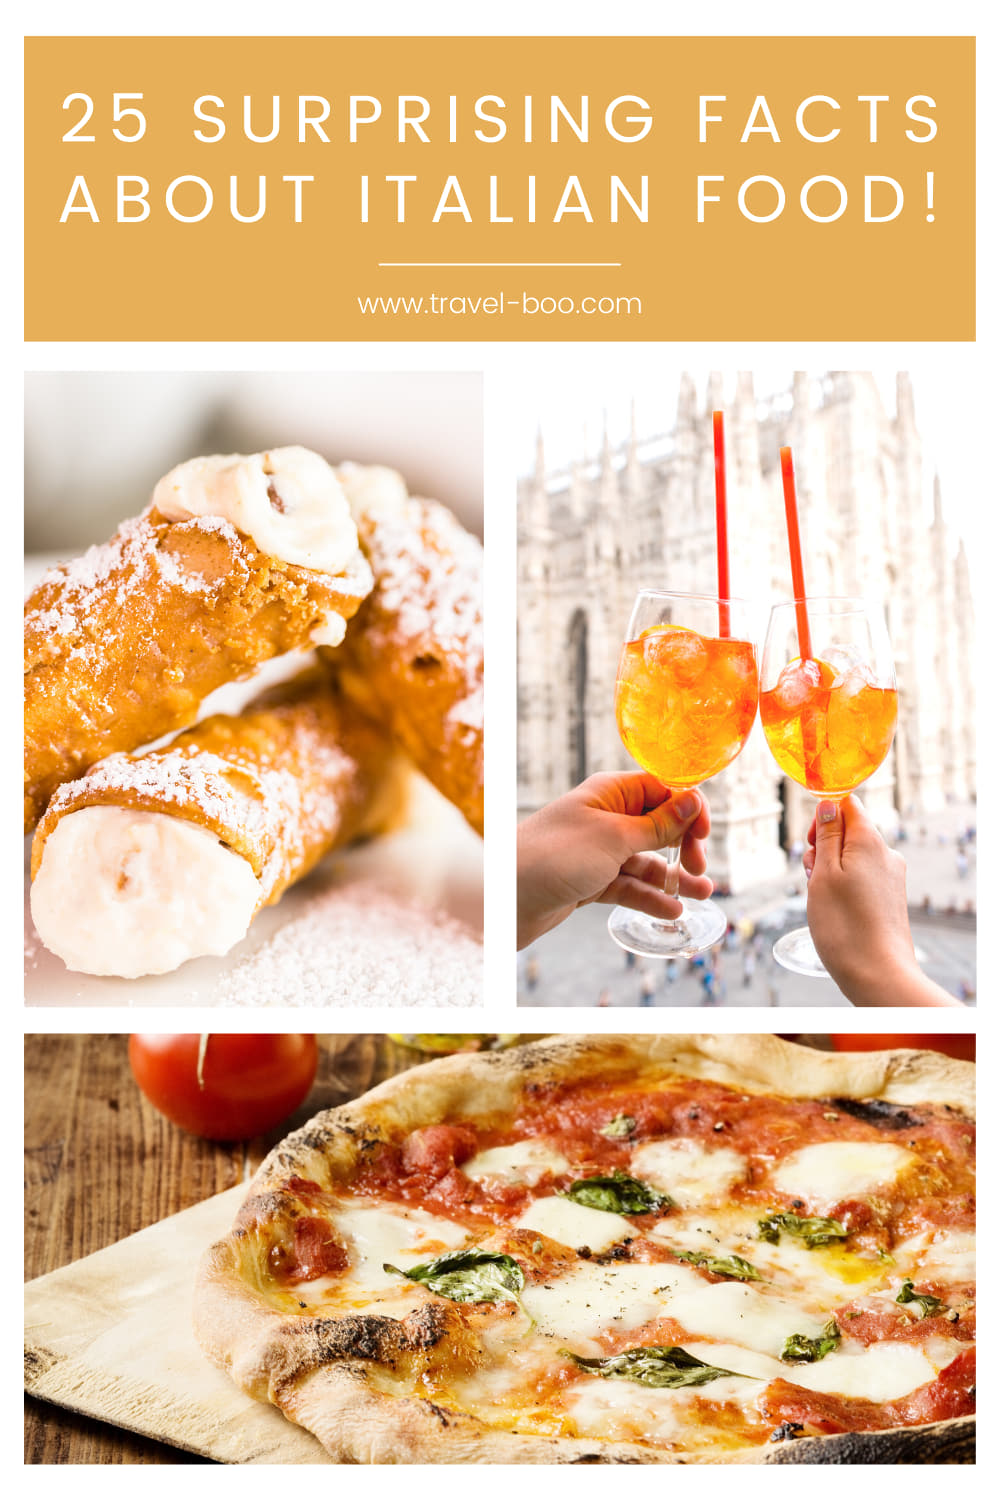 25 Fun & Fascinating Facts About Italian Food And Cuisine! Italy Travel, Italy Travel Guide, Italy Foods, Facts about Italian food, Italian Food Facts, Italy Travel Tips.